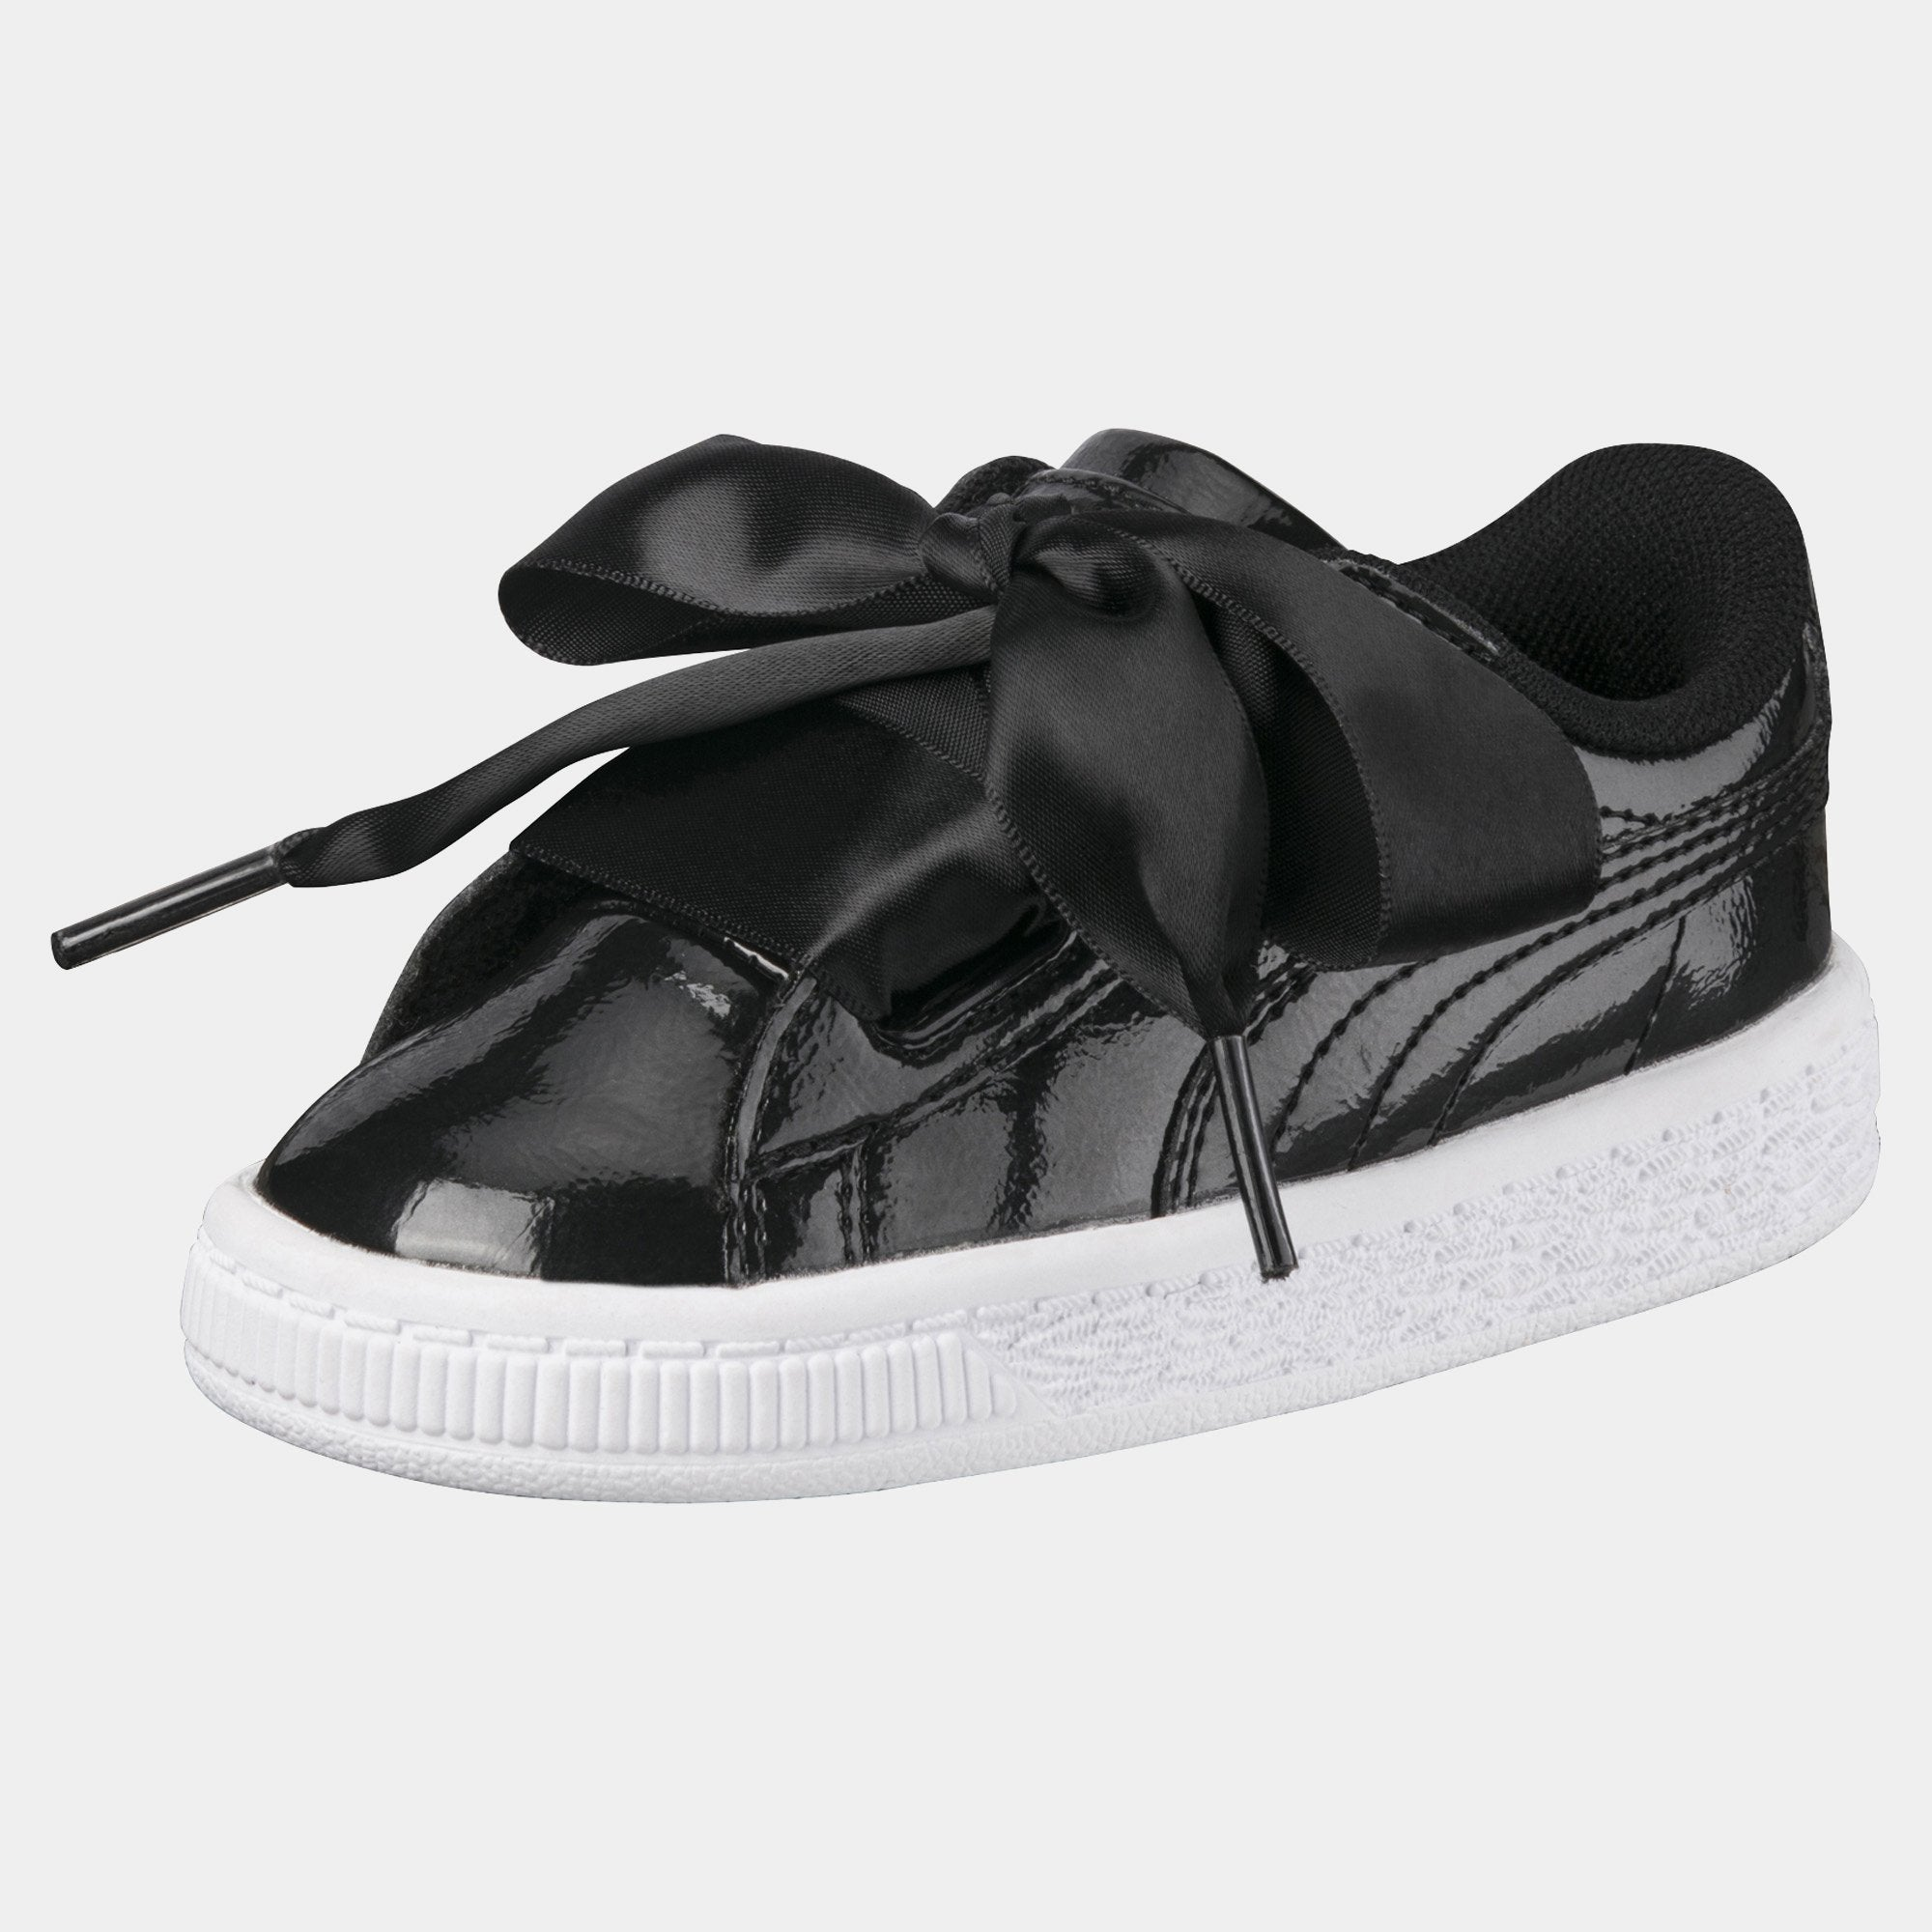 on sale 39c7a 49c16 Puma Basket Heart Black